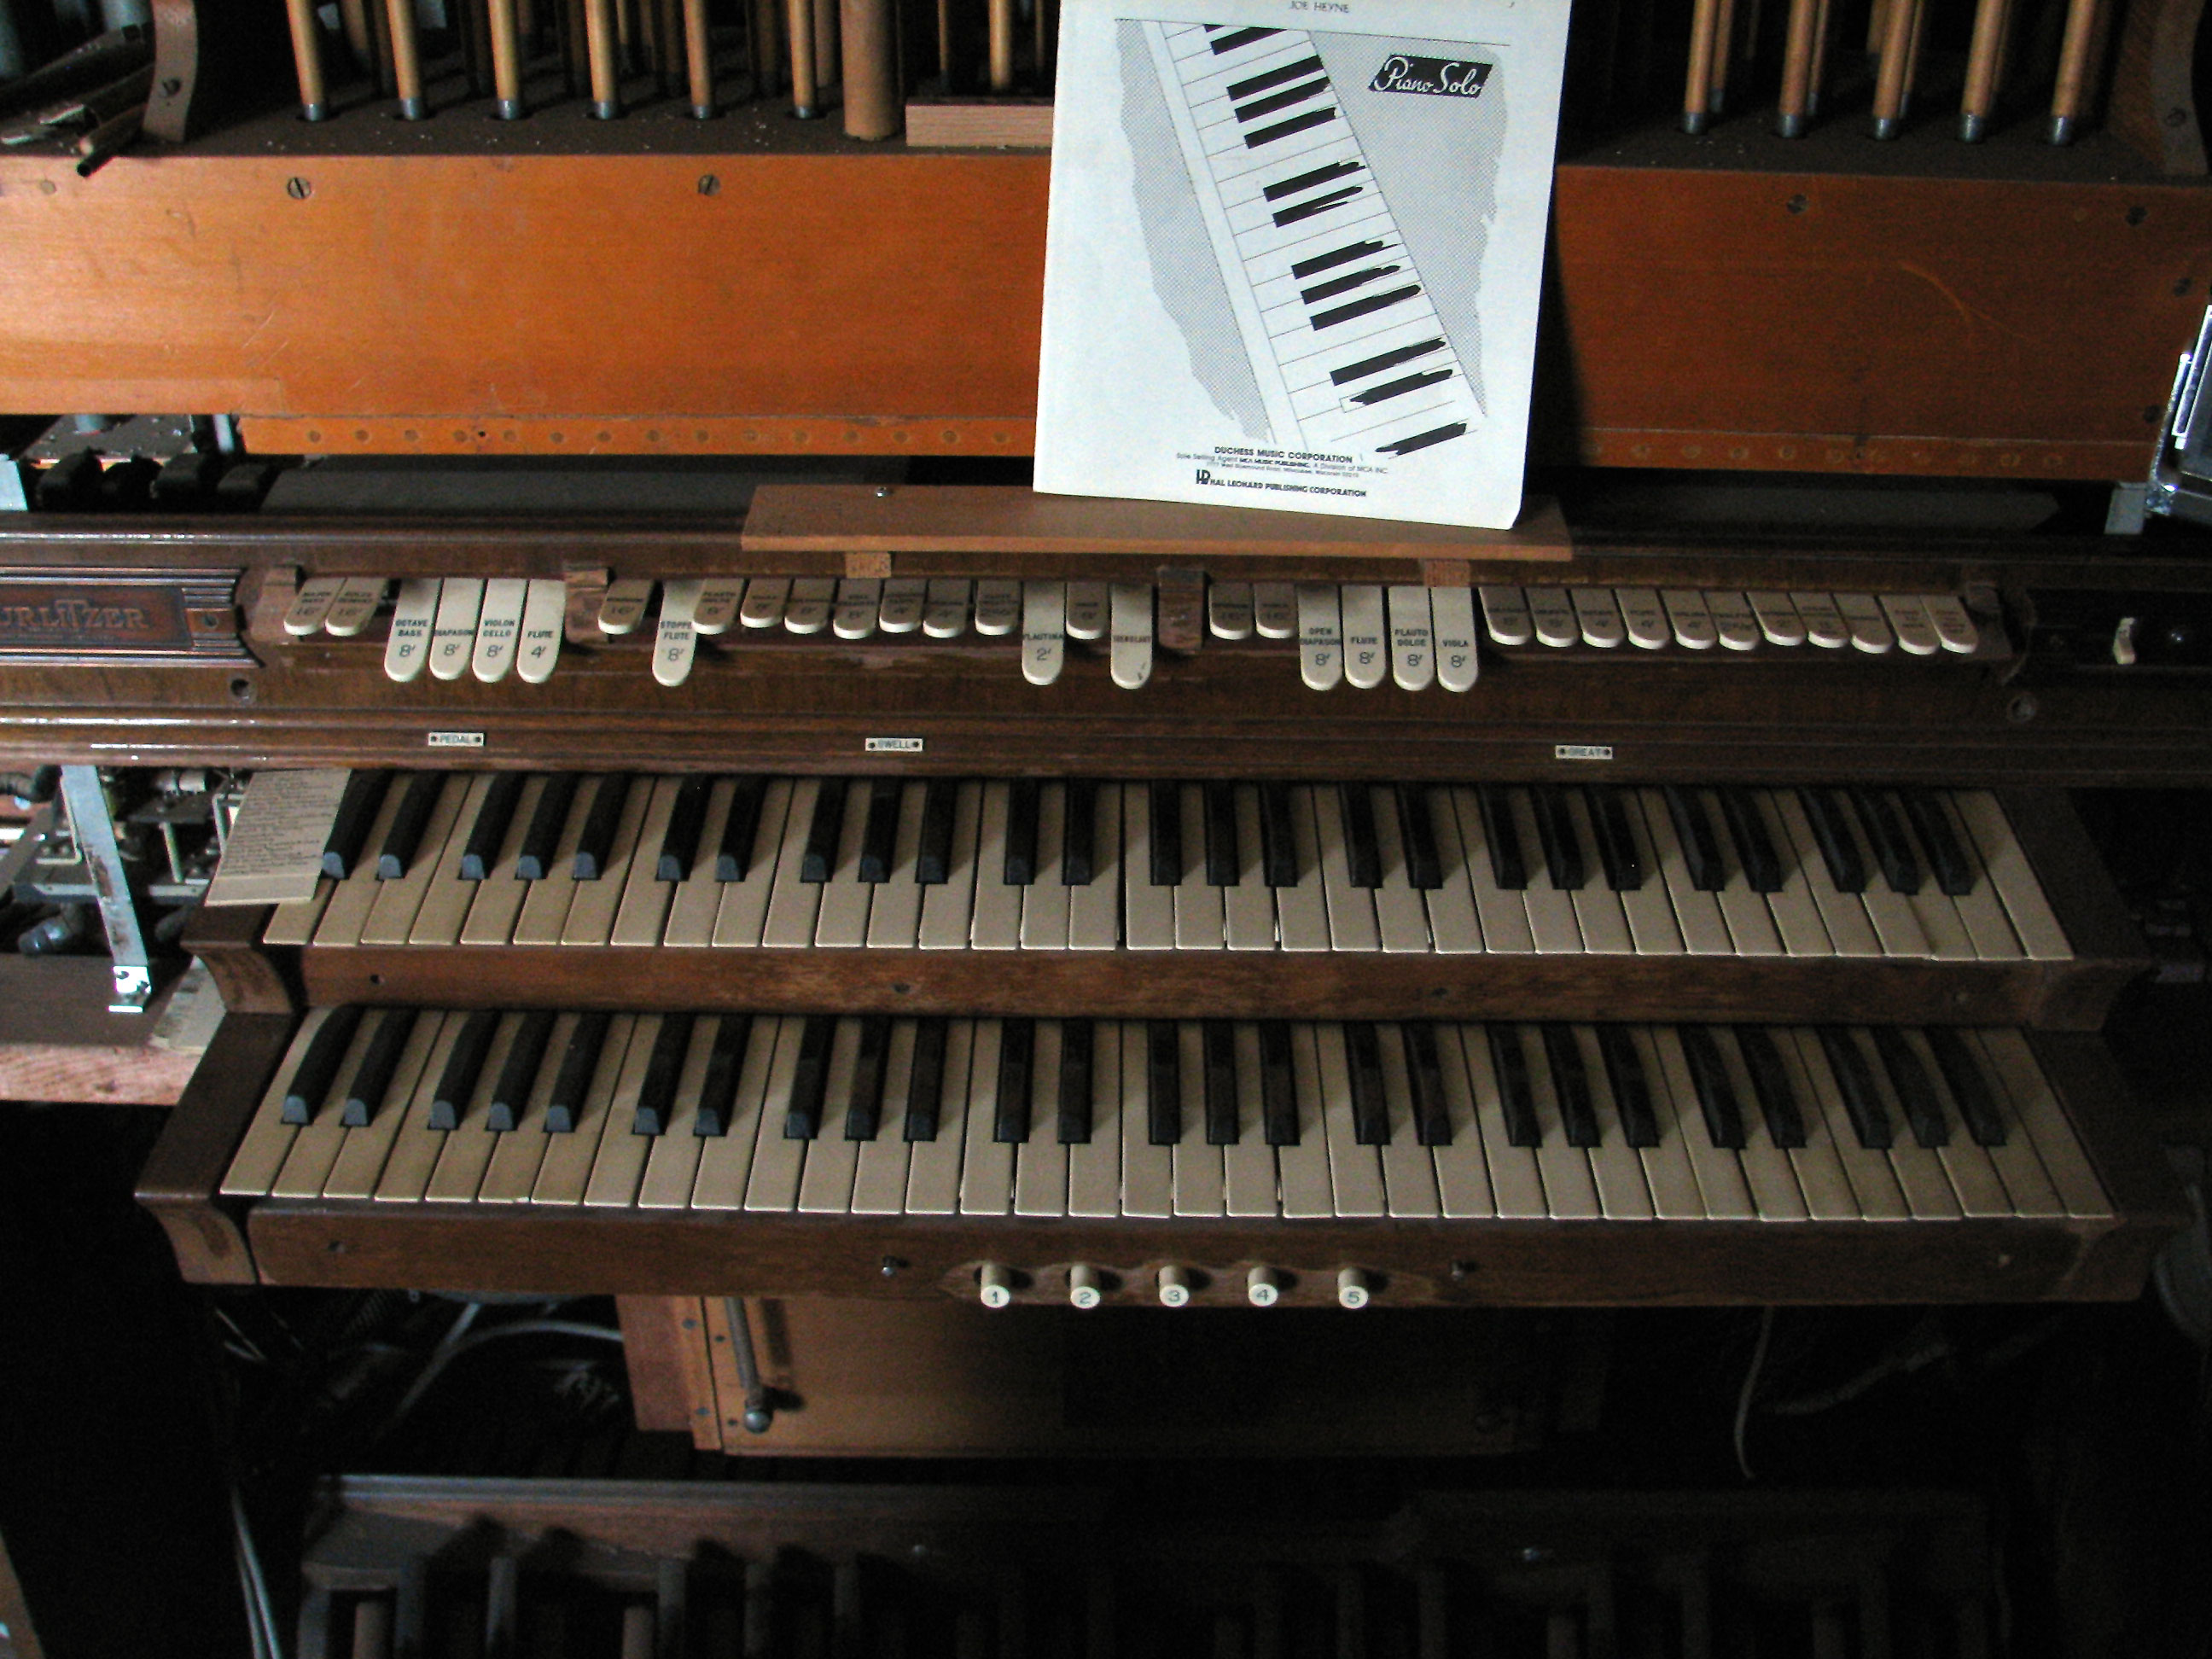 Click here to download a 2592 x 1944 JPG image showing the playing table of the 2/3 Mighty Spohn Pipe Organ installed in the organ shop upstairs.